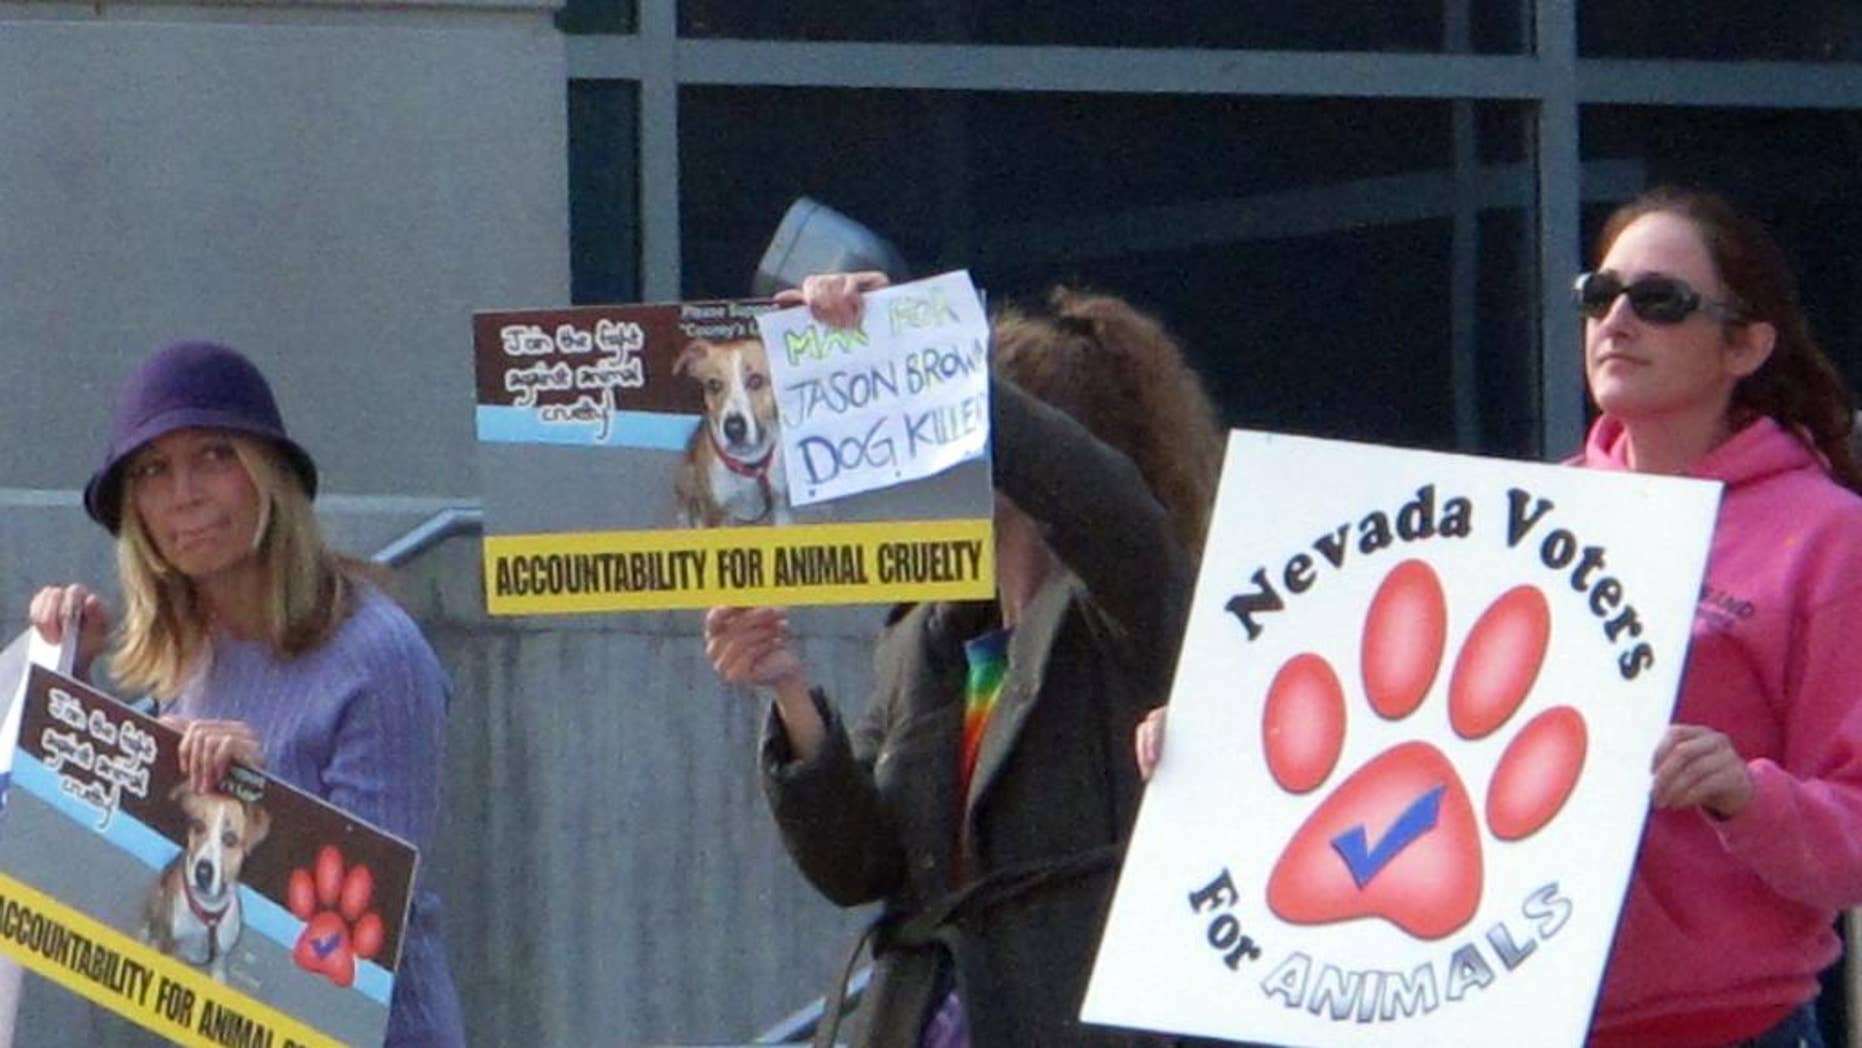 A half dozen animal rights activists protested Thursday, Oct. 16, 2014, outside Reno Justice Court where Jason Brown, 24, was to appear later in the day at a status hearing on charges accusing him of torturing and killing several dogs in July. Leaders of Nevada Voters for Animals are urging the maximum punishment if Brown is convicted of all seven counts, which could total more than 20 years in prison. (AP Photo/Scott Sonner).